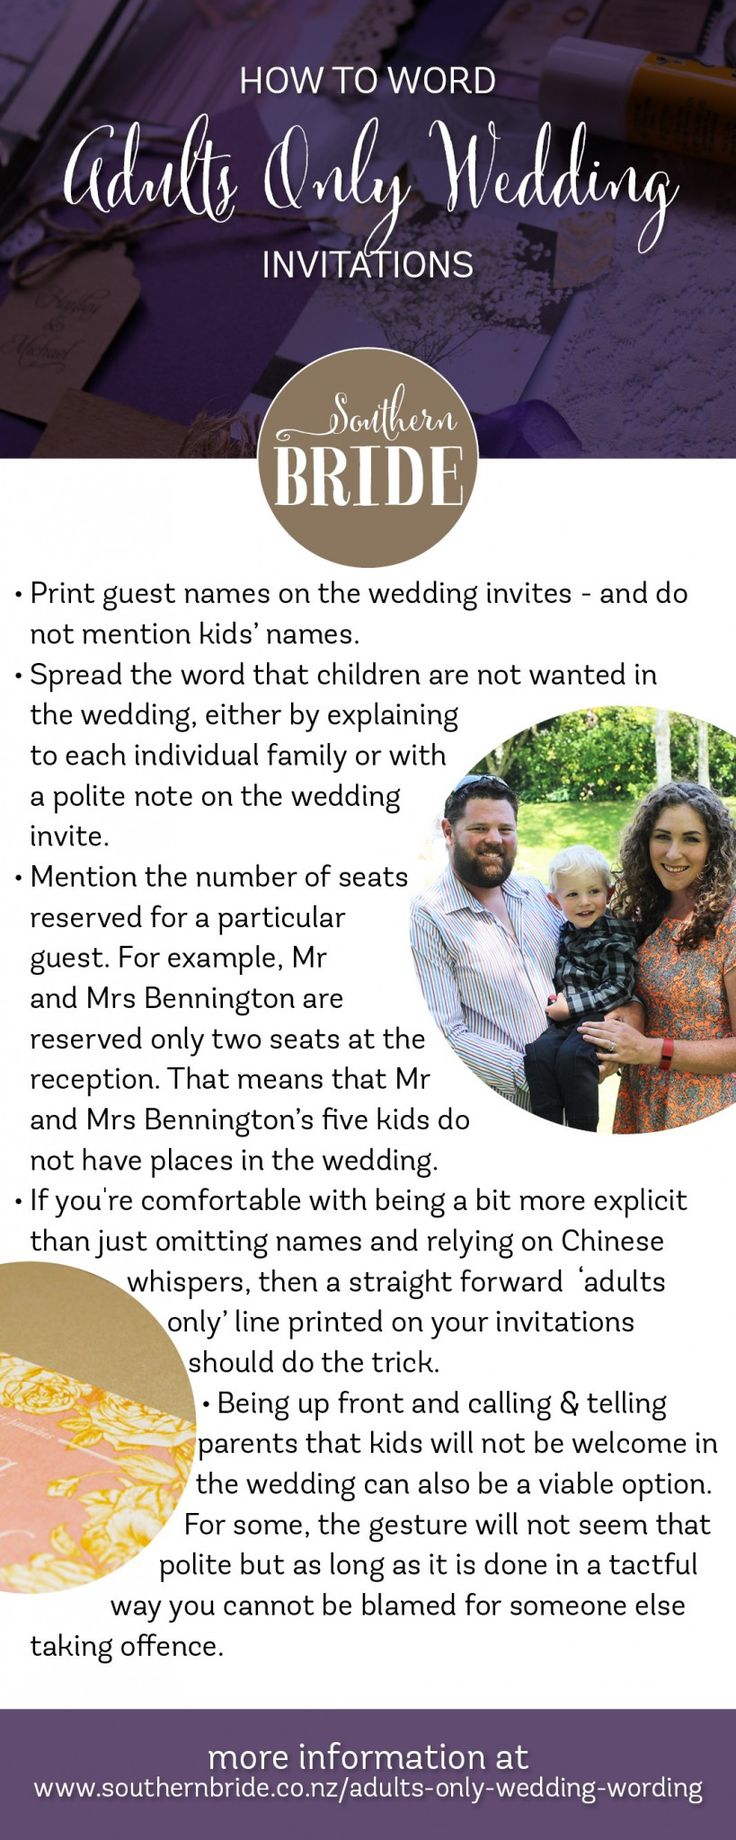 how to word evening wedding reception invitations%0A How to tell guests you are having an adults only wedding